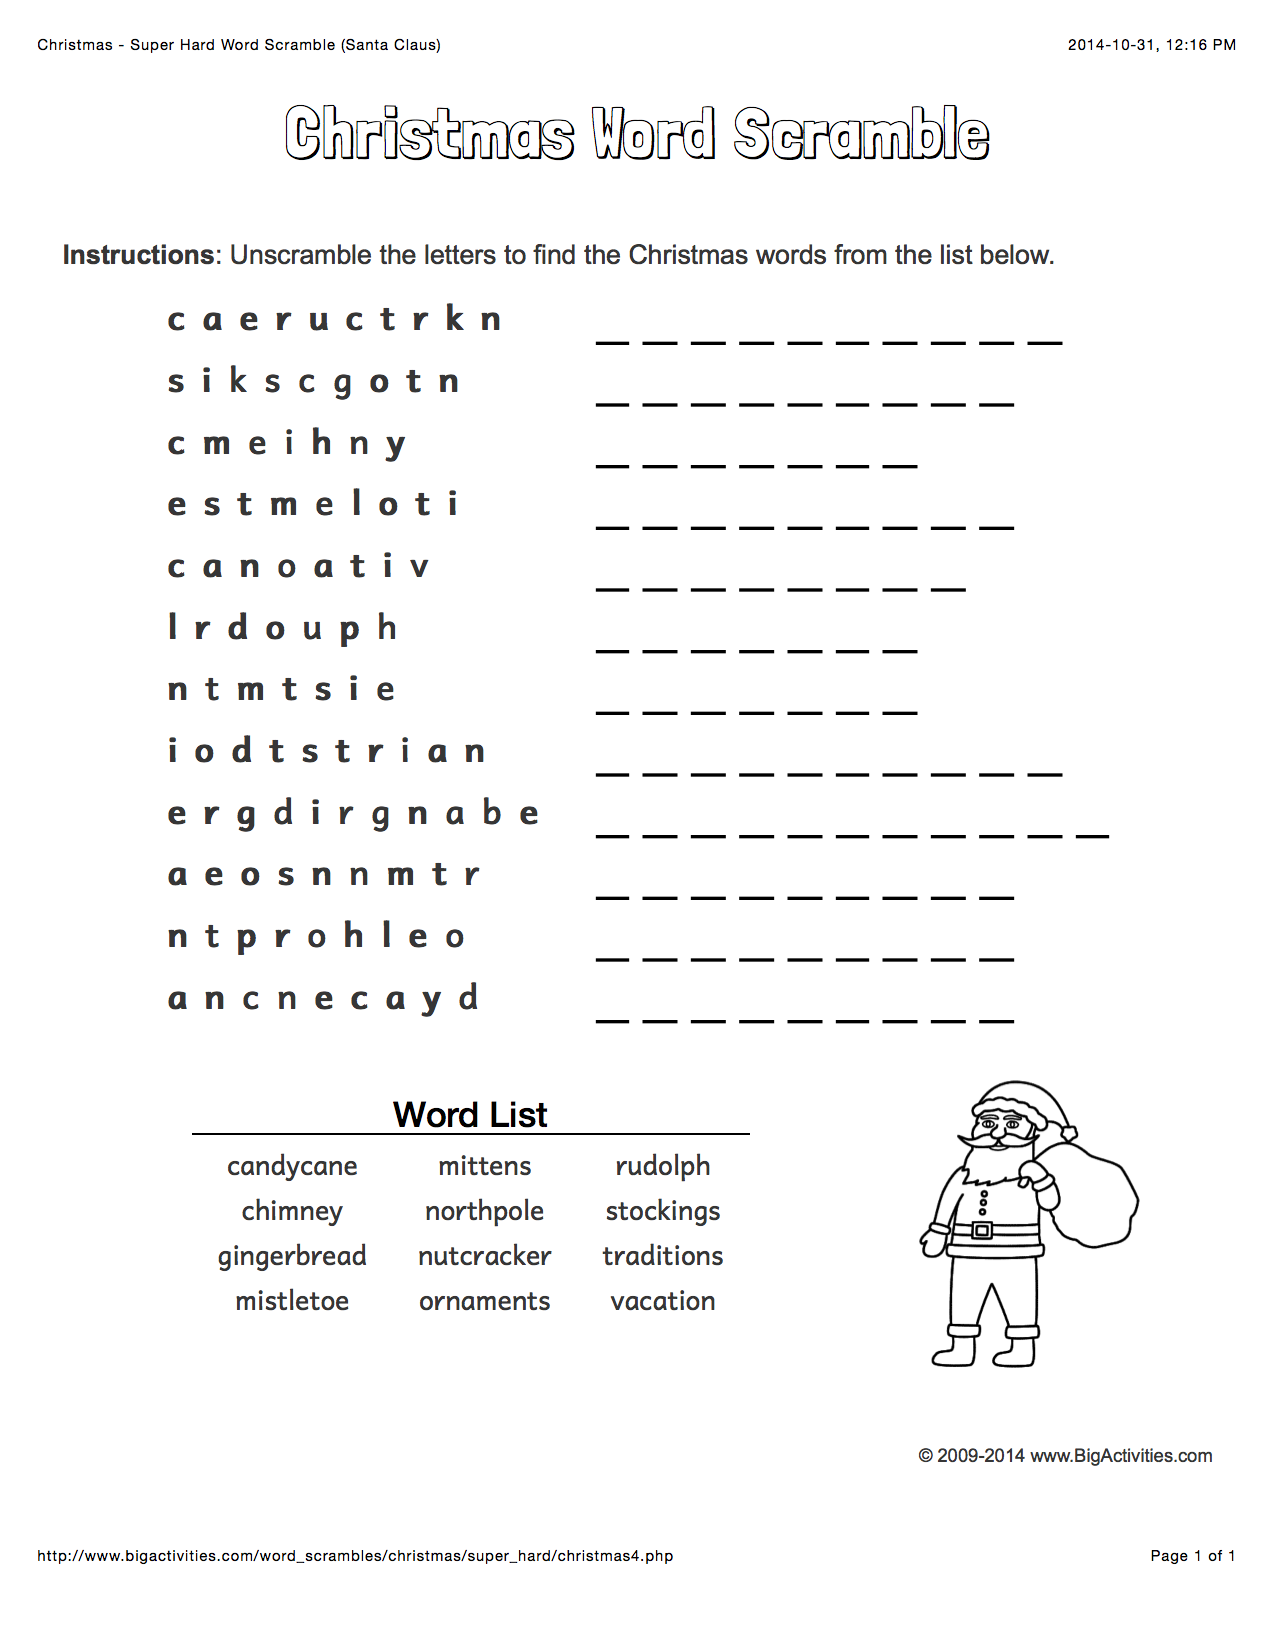 Christmas Word Scramble With Santa Claus 4 Levels Of